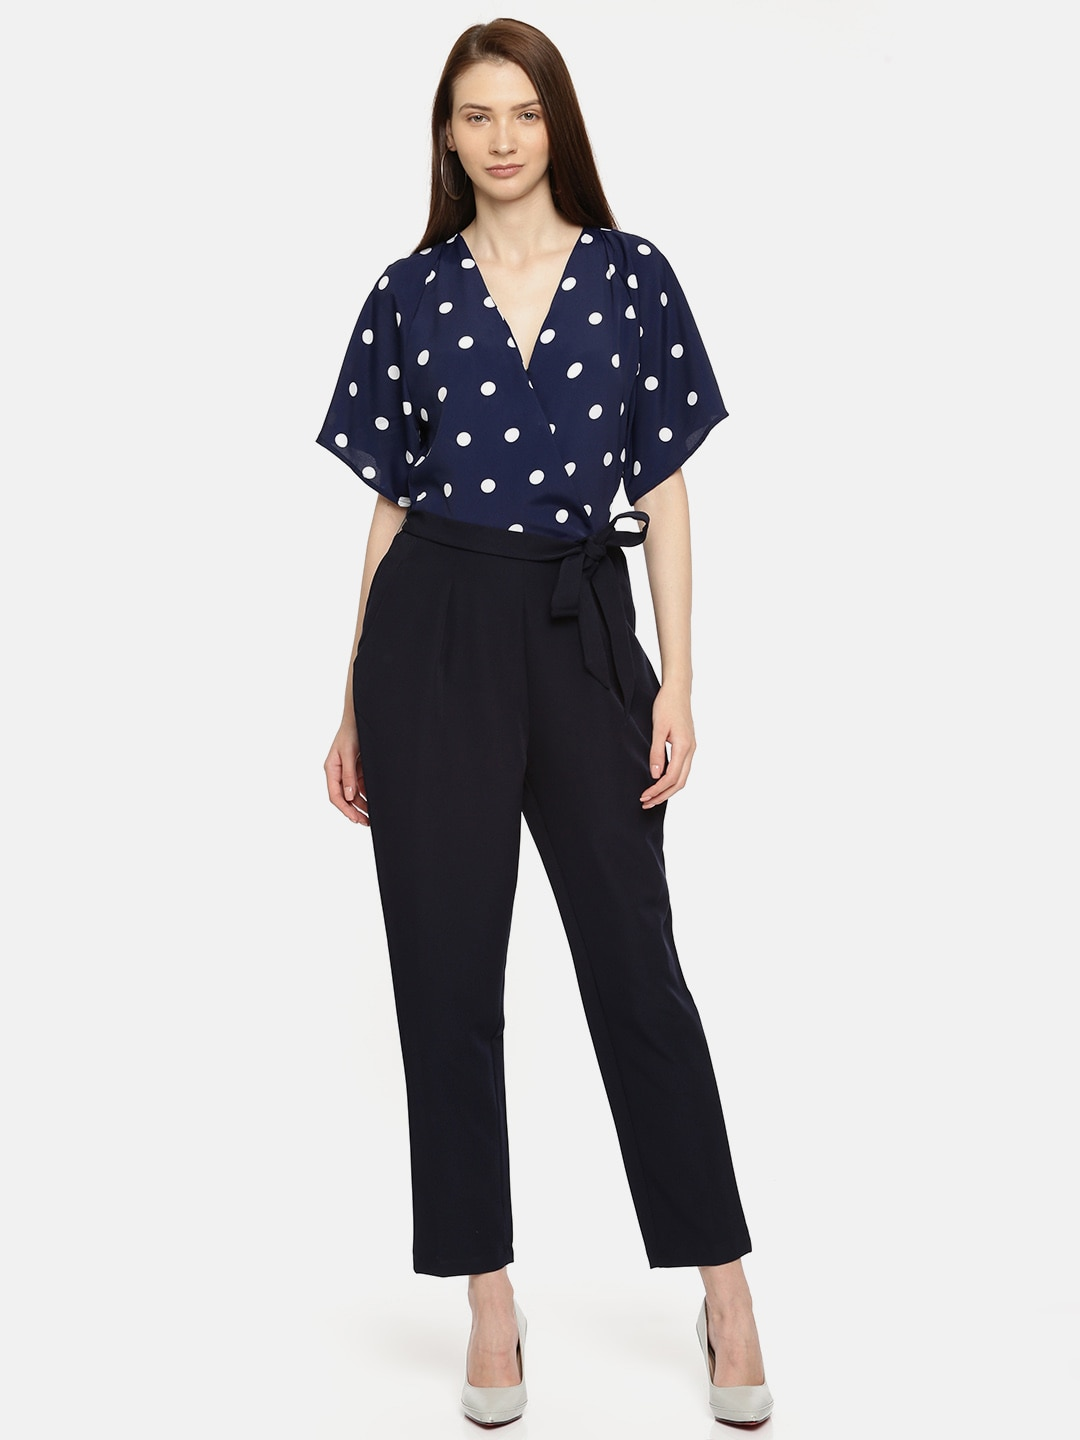 d8e310ef323 Women Jumpsuits Rompers - Buy Women Jumpsuits Rompers Online in India